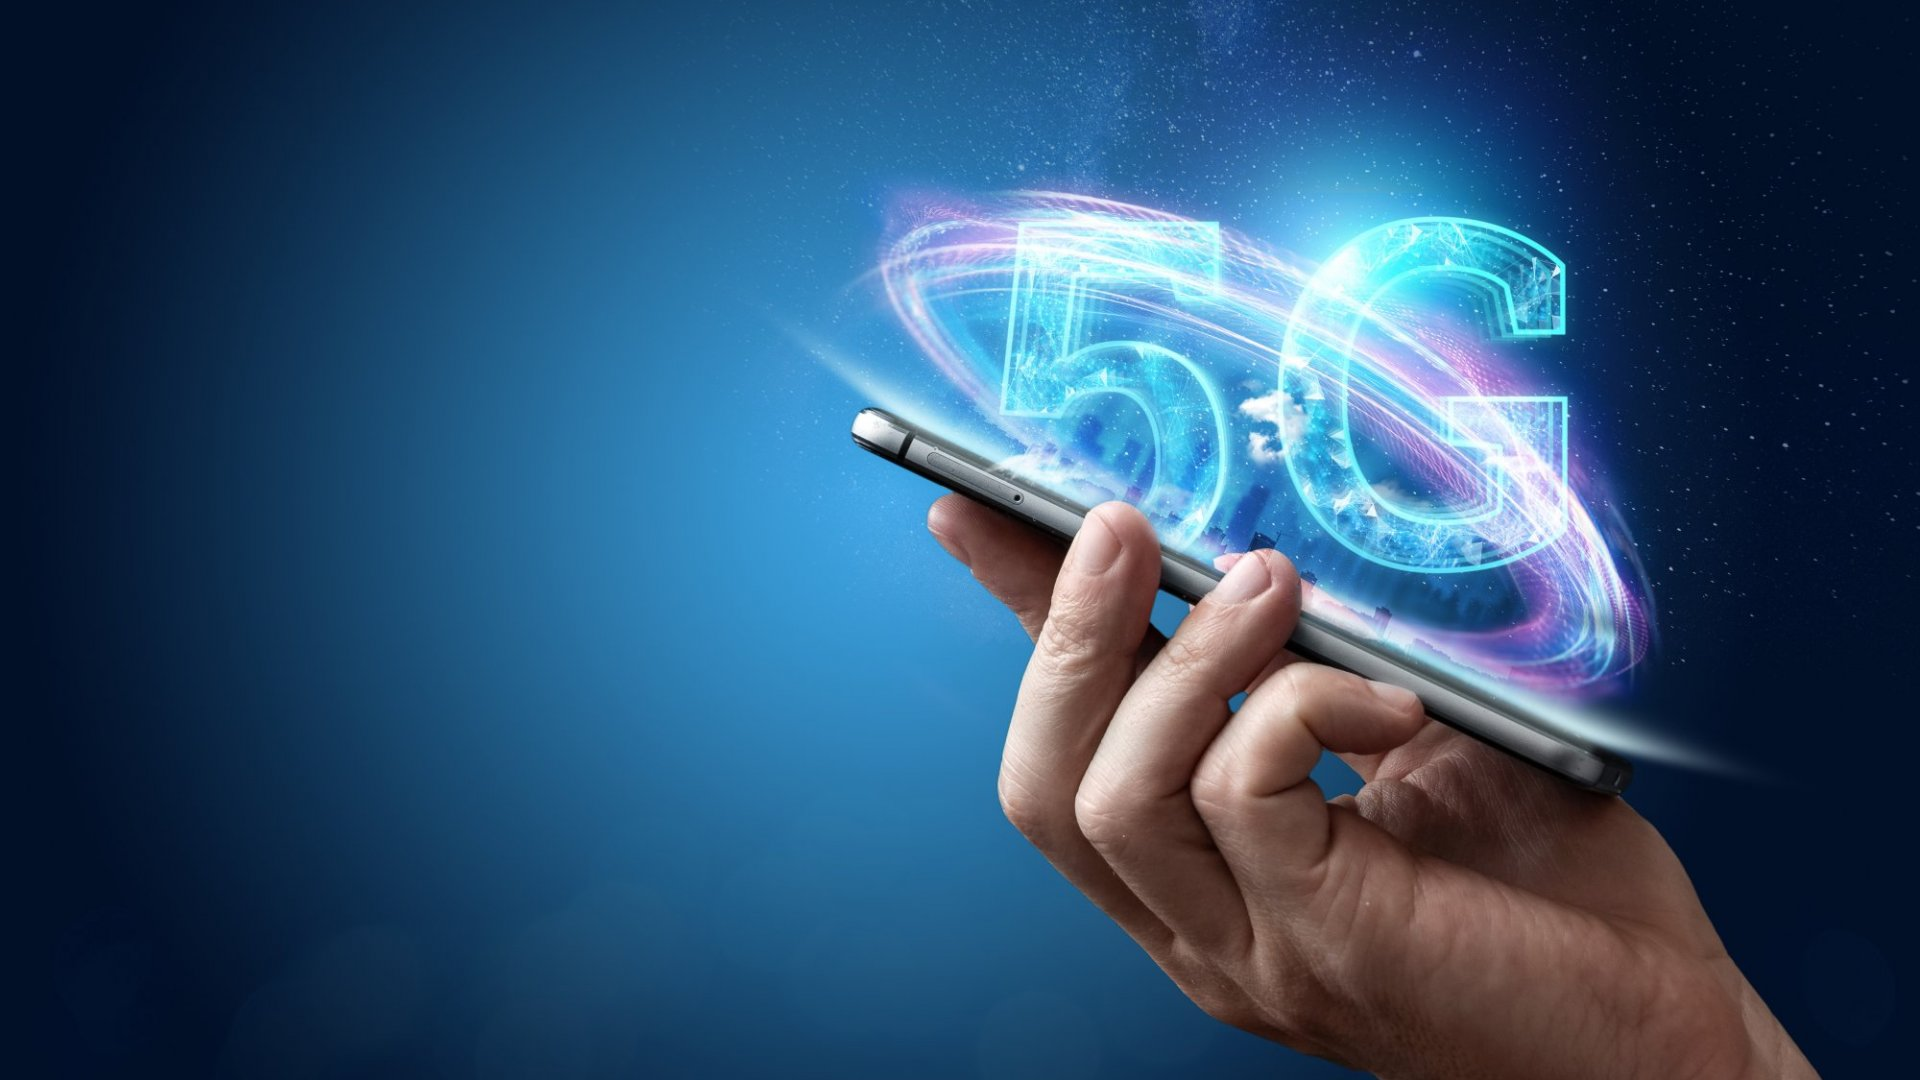 5G Devices